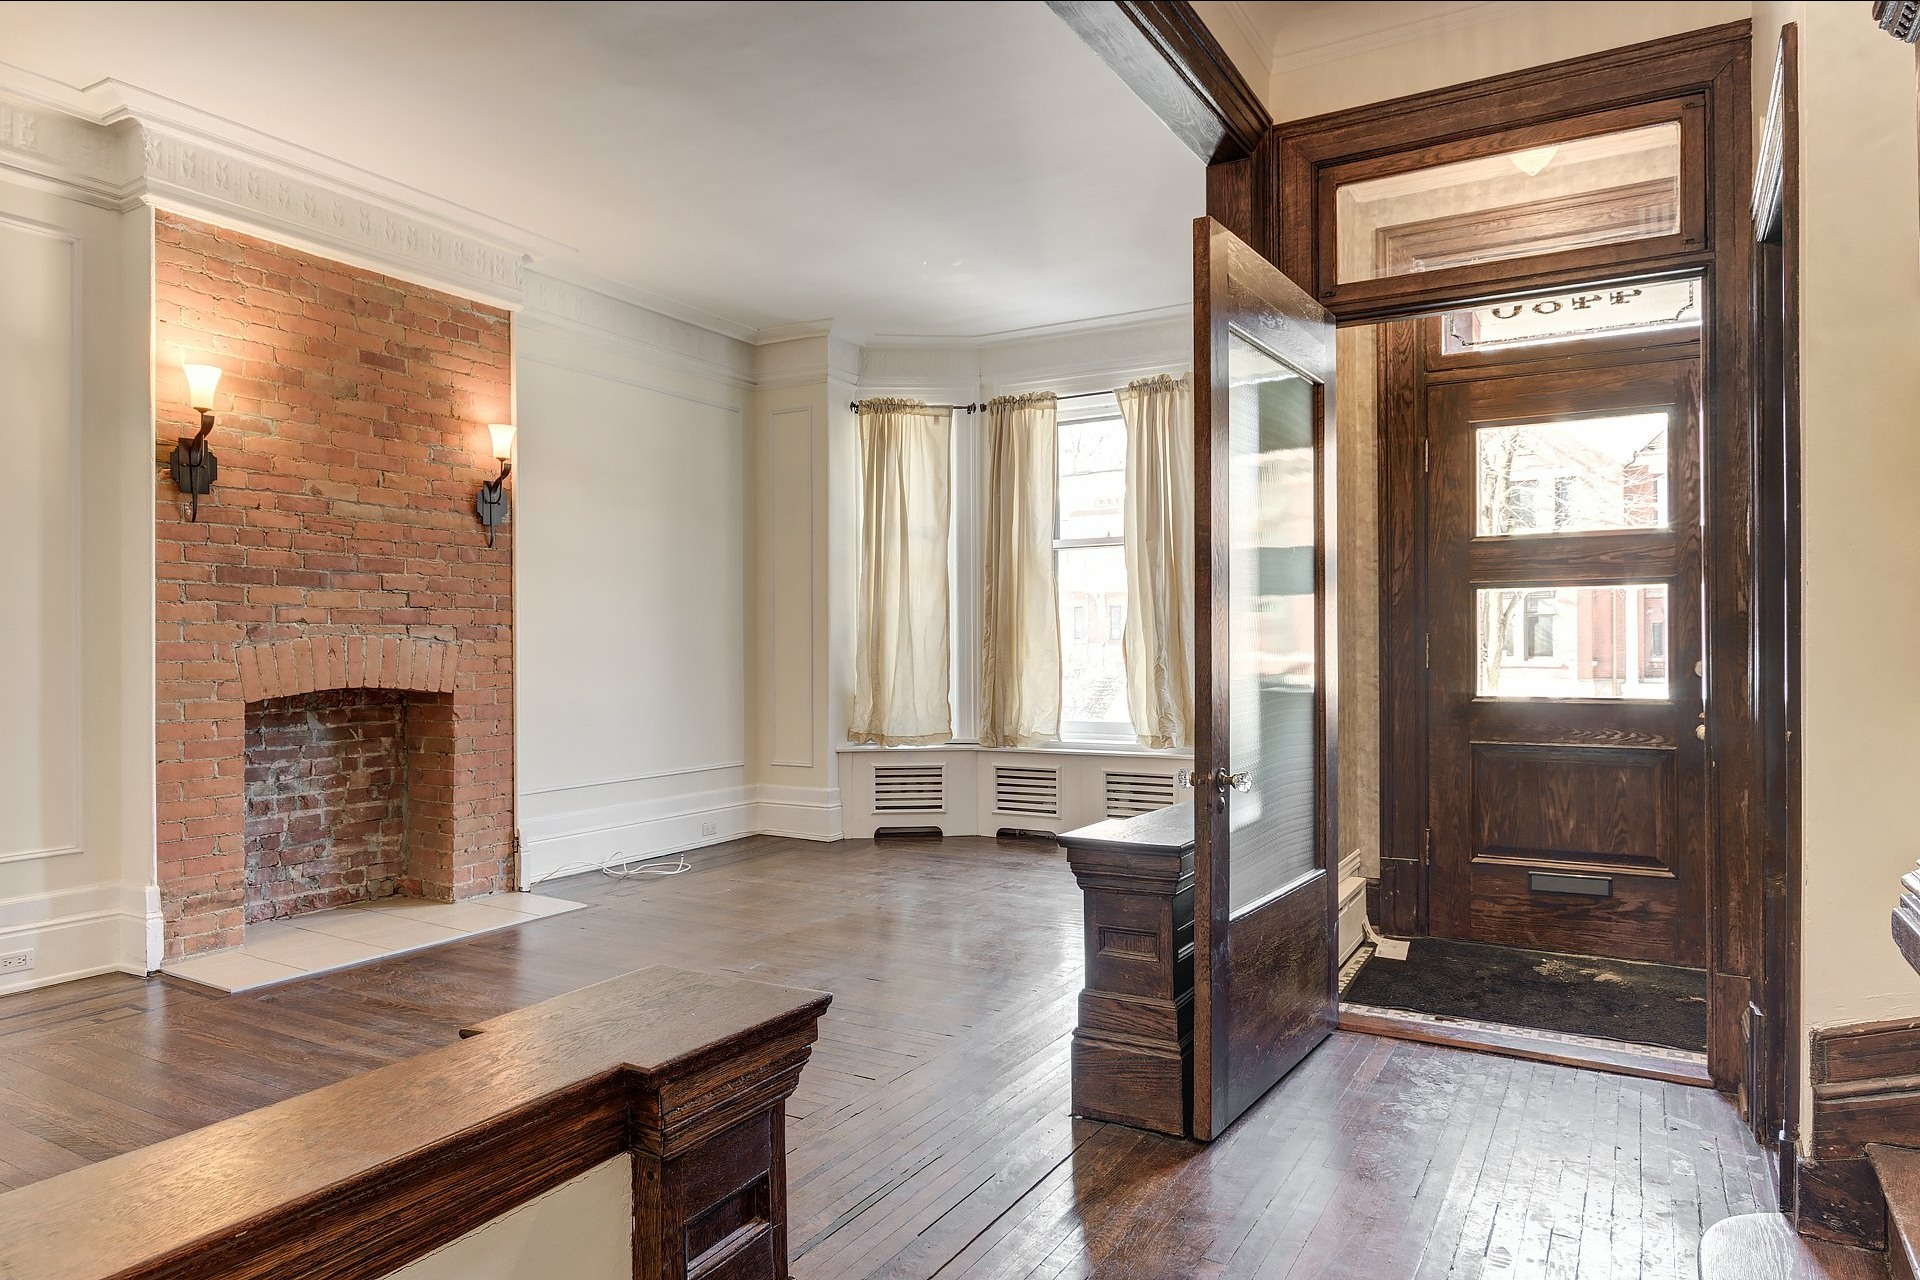 image 1 - House For rent Westmount - 9 rooms